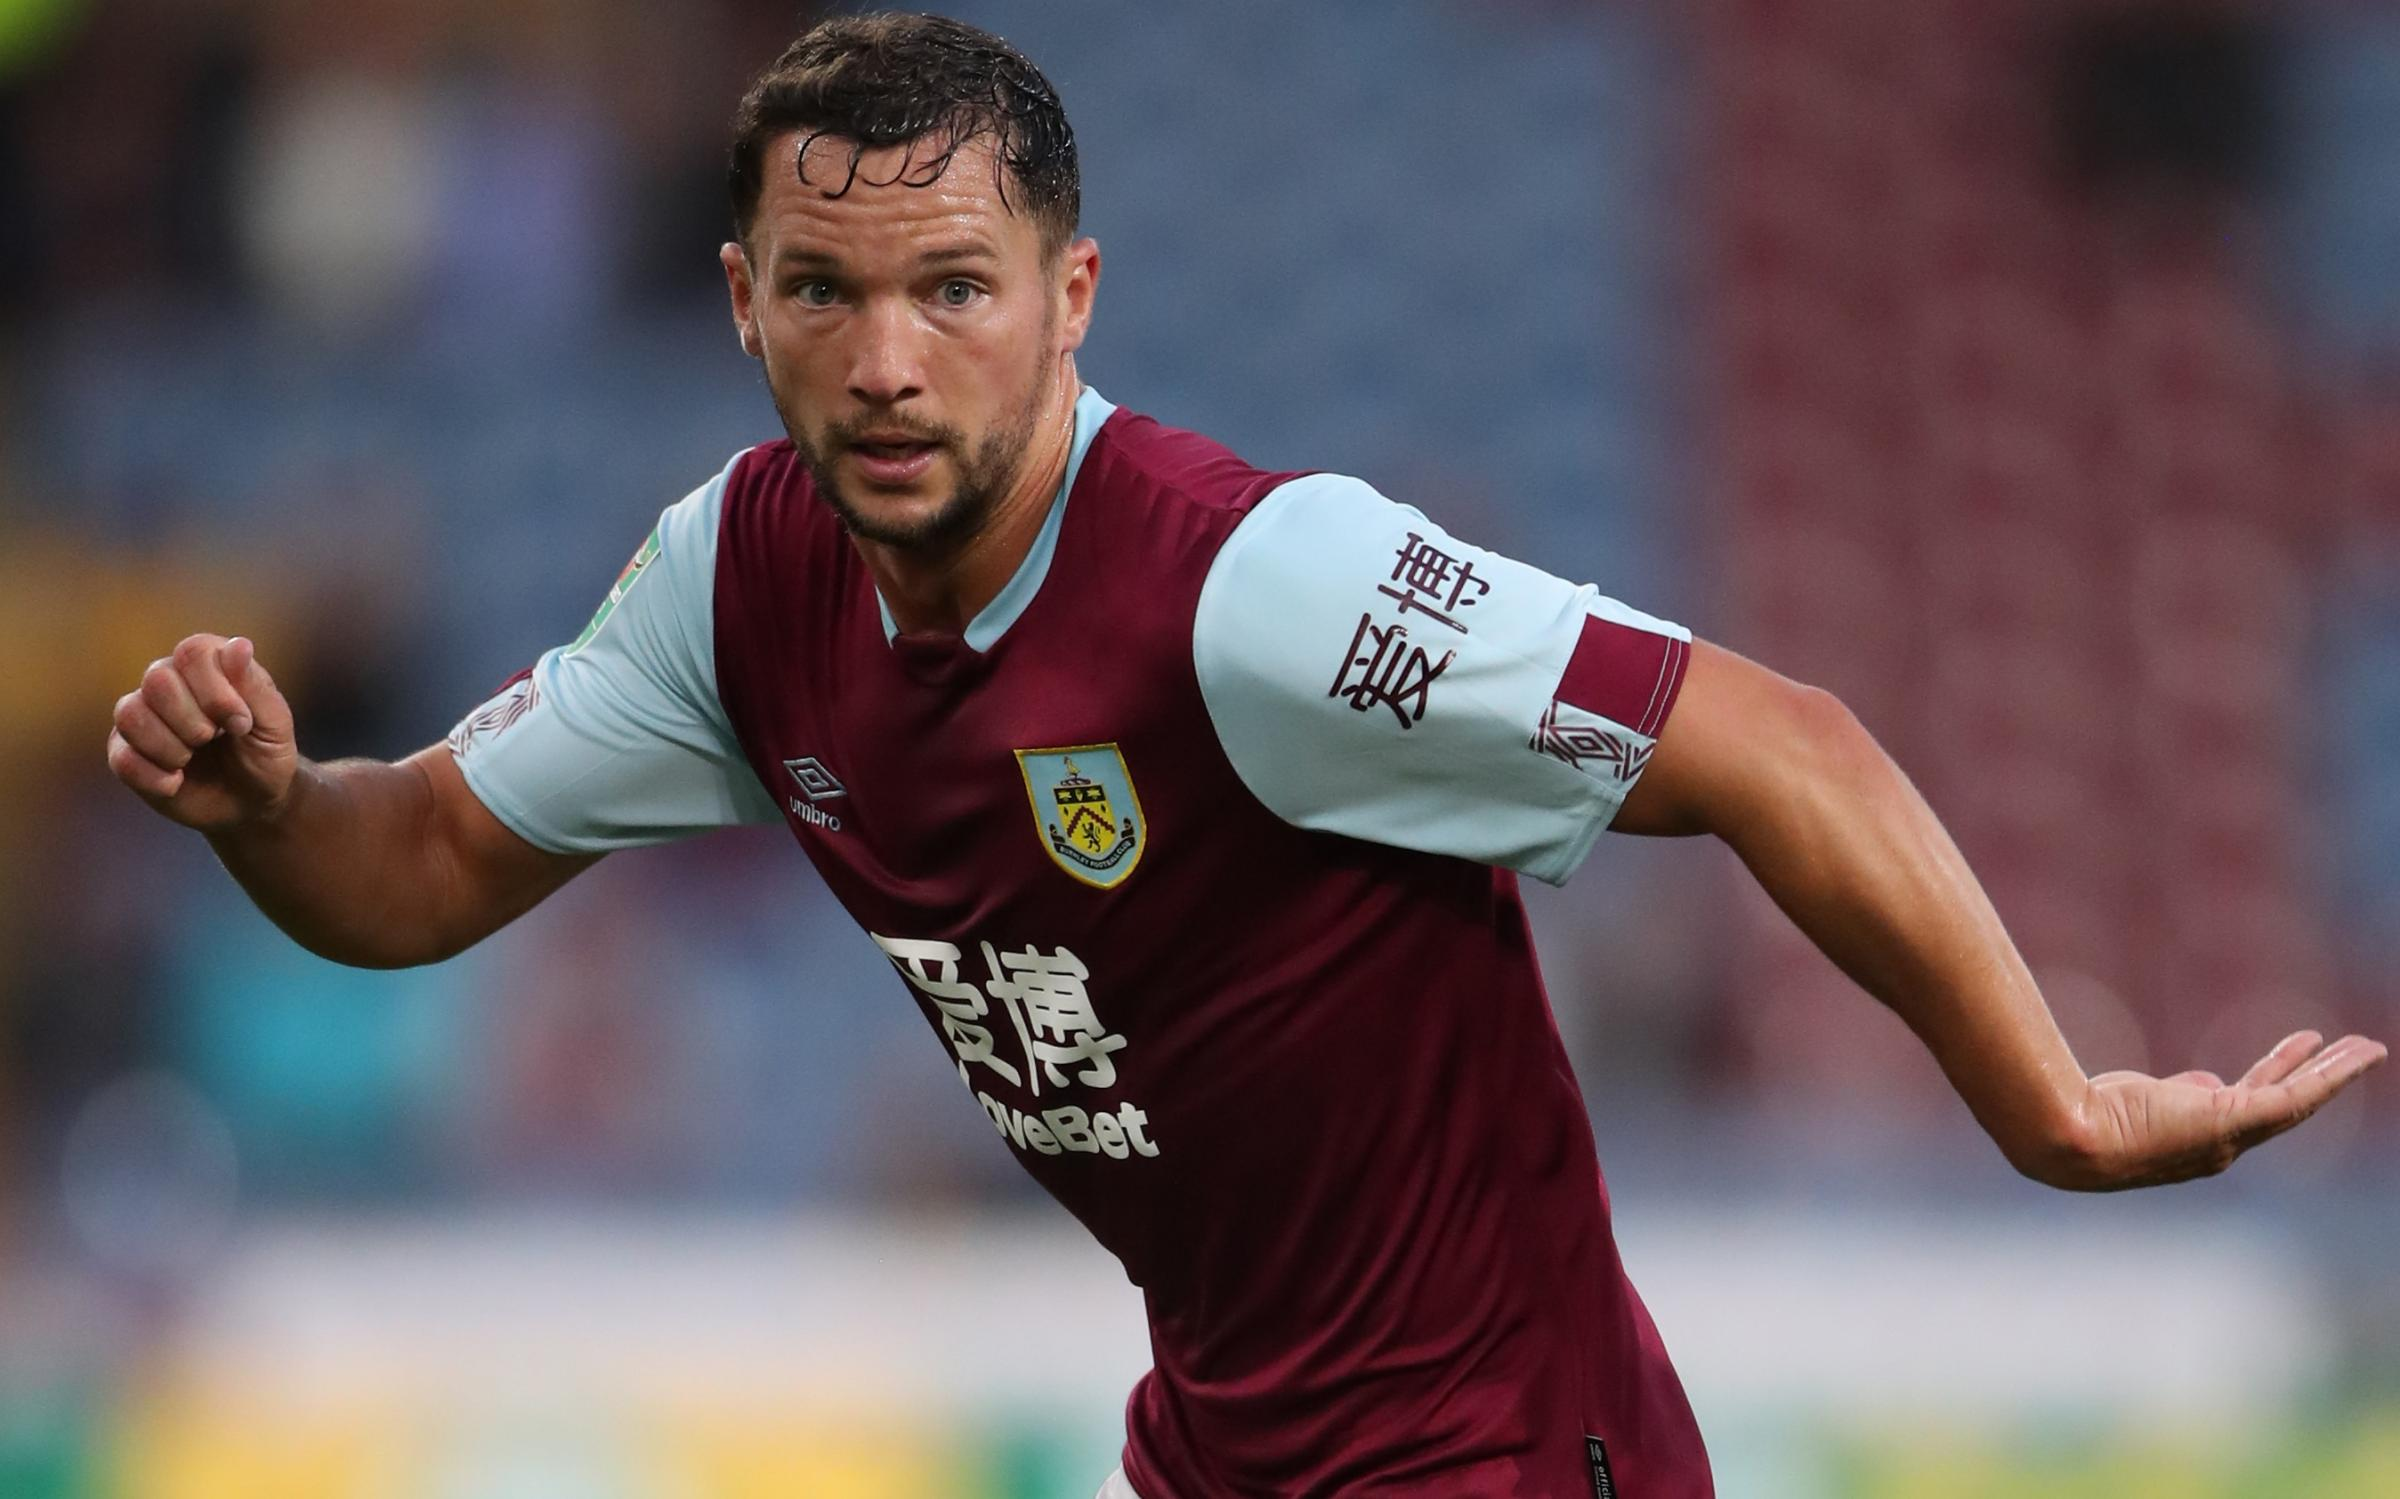 Danny Drinkwater plays as Burnley progress in Lancashire Cup